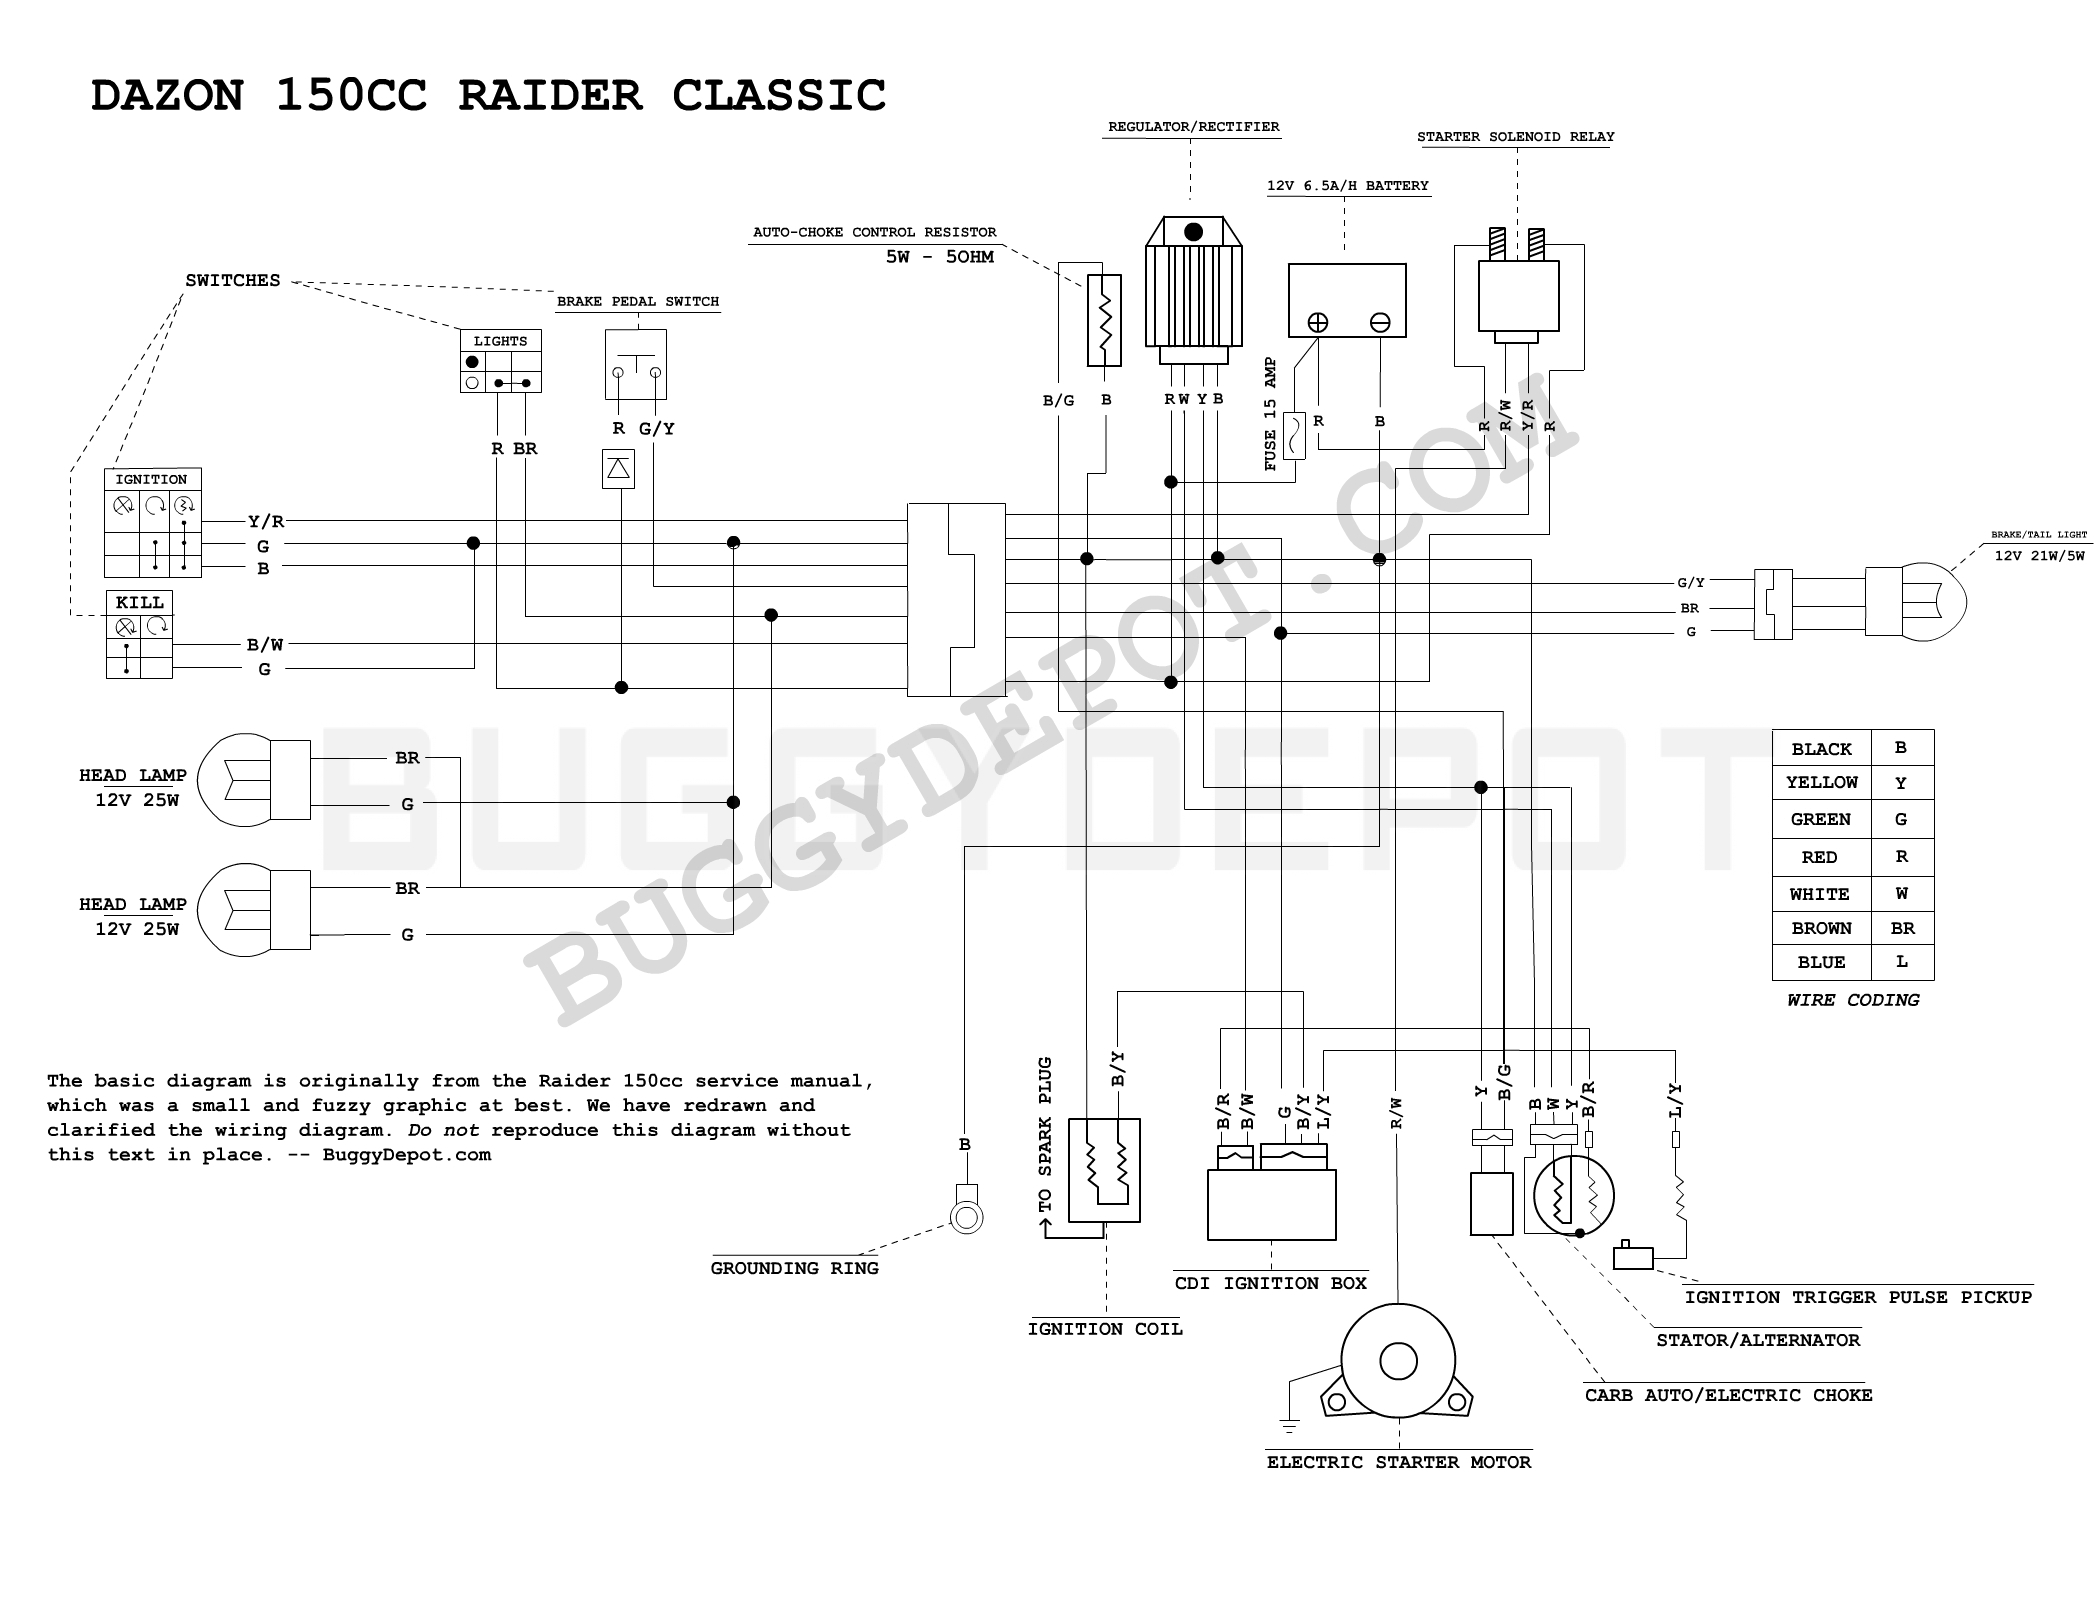 article_33_1278205207 dazon raider classic wiring diagram buggy depot technical center yerf dog wiring harness at gsmx.co